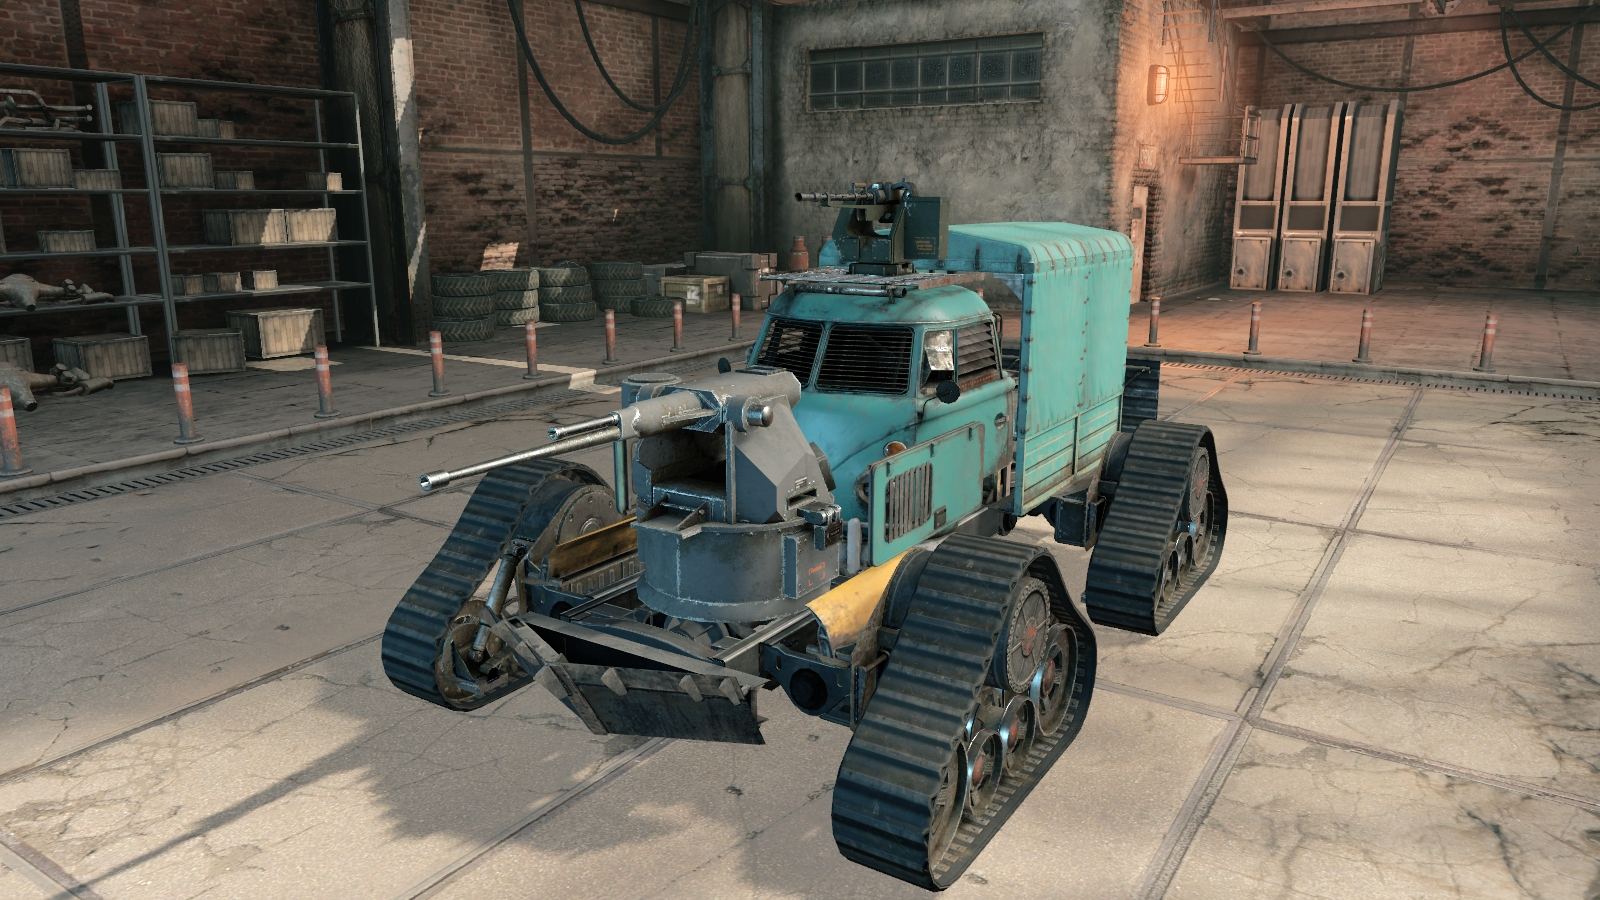 Nobleman of crossout